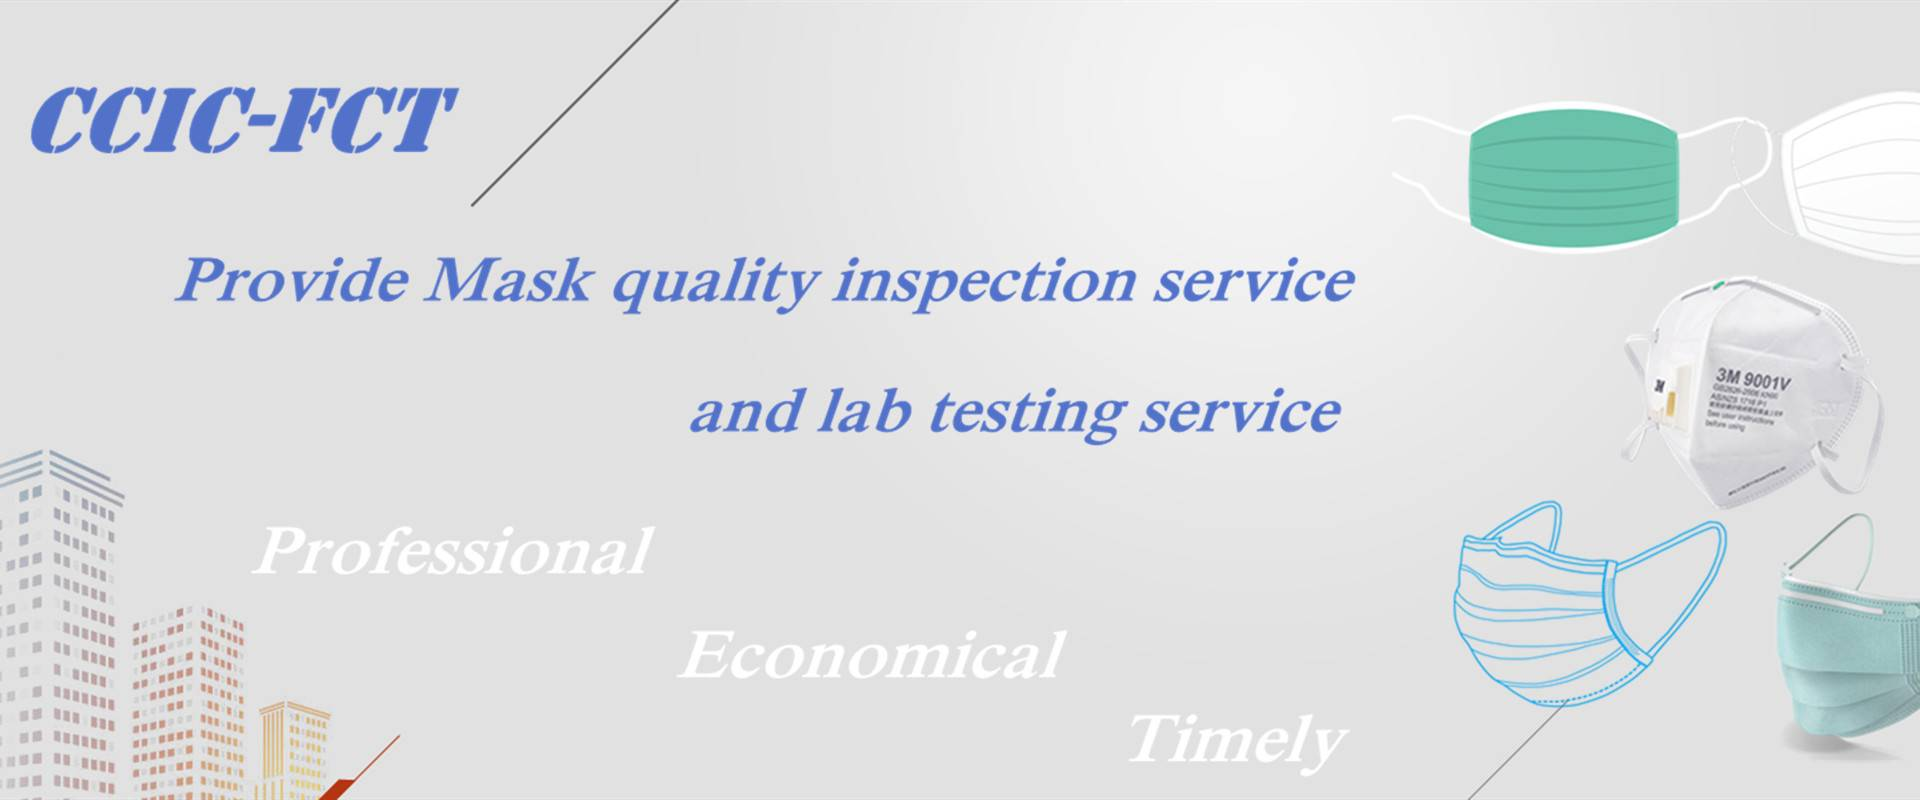 CCIC mask quality inspection service1